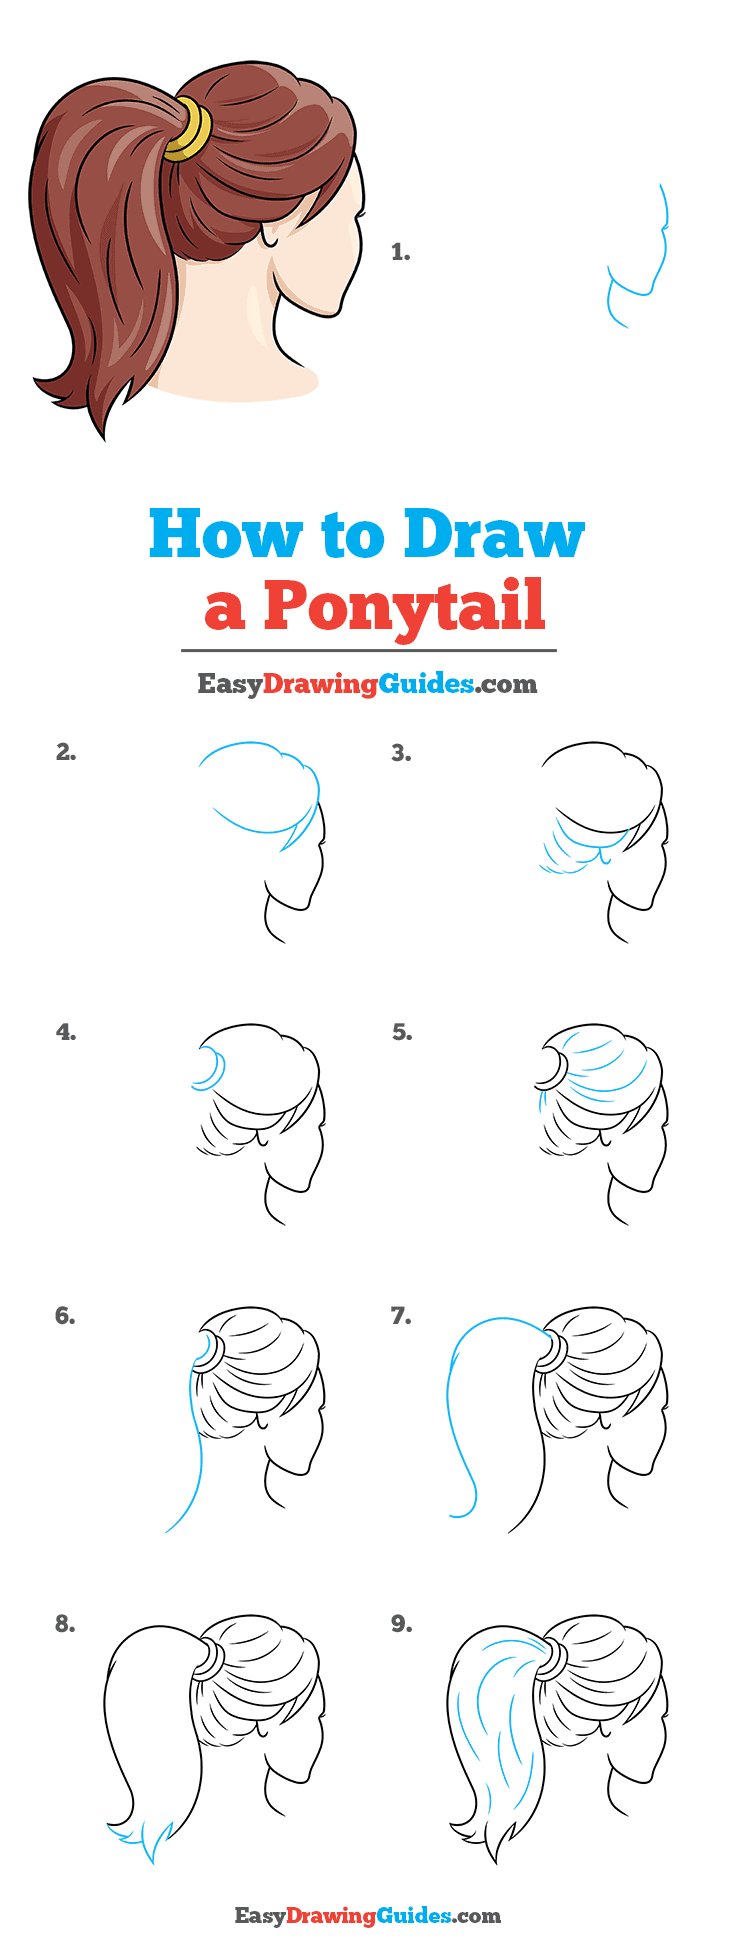 How to Draw Ponytail